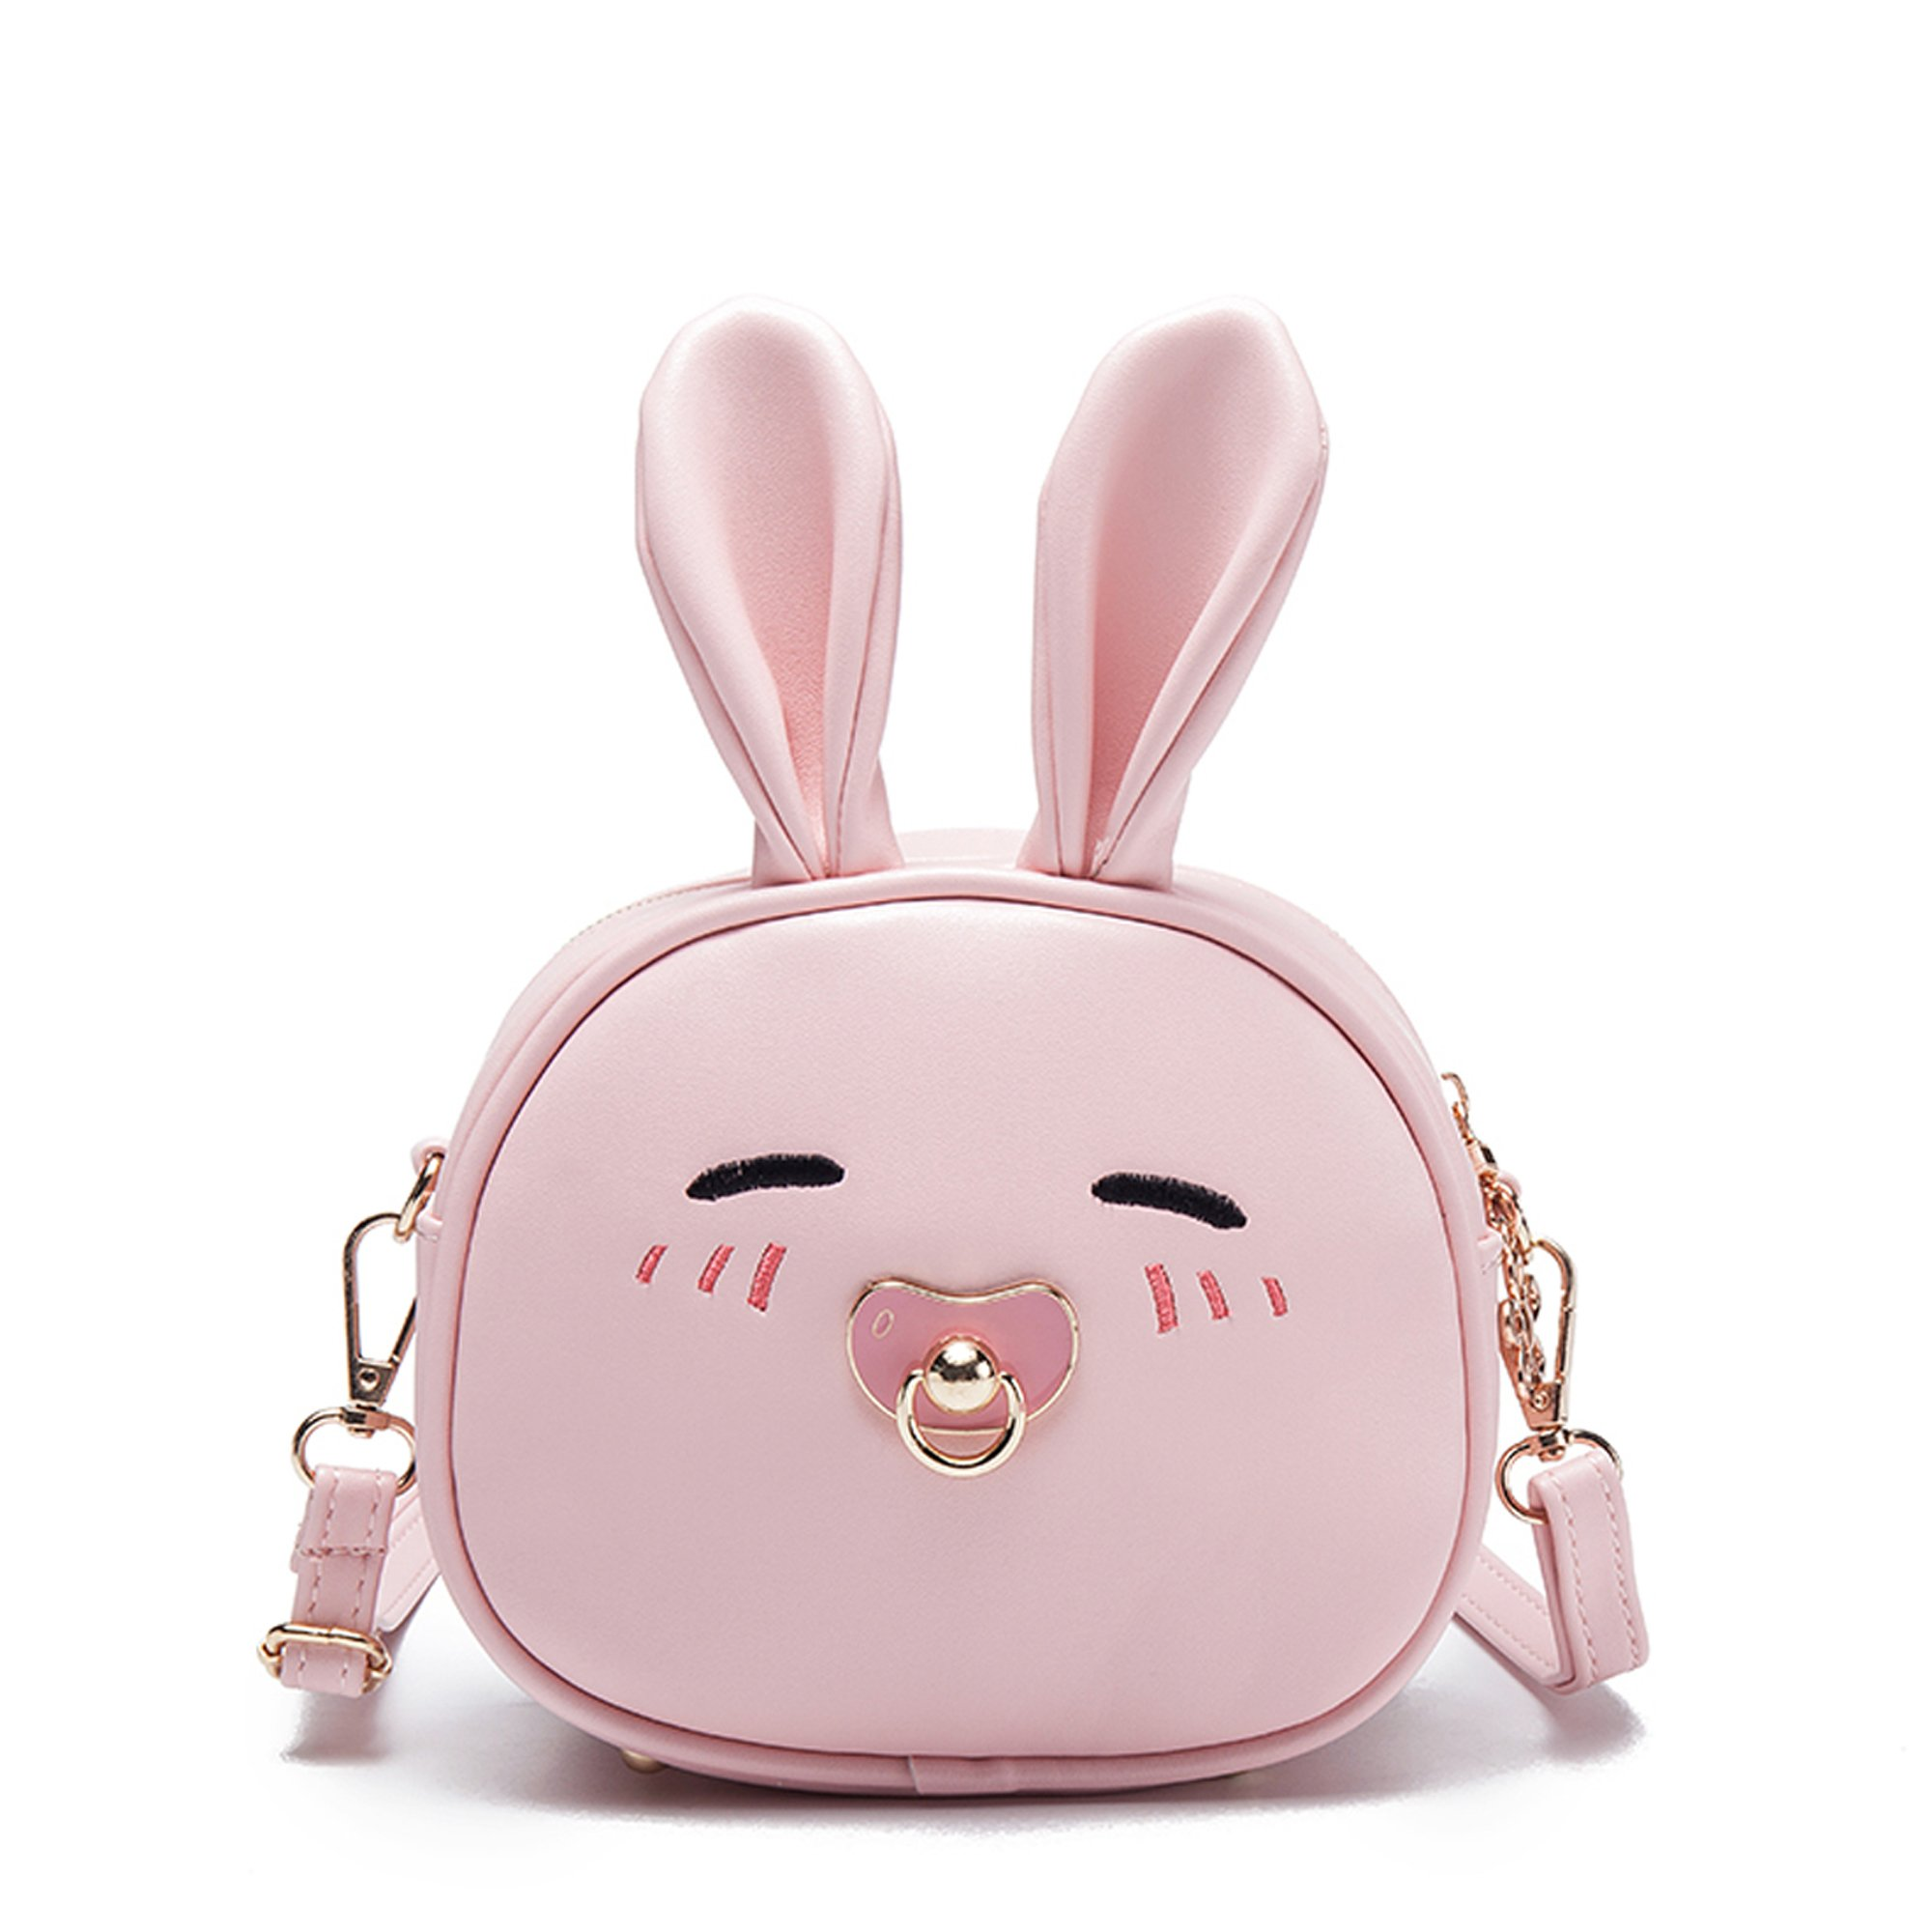 Child Girls Cute Mini Travel Backpacks Purses Convertible Cross Shoulder Bags Stylish Satchel Outdoor Gifts (bunny pink)